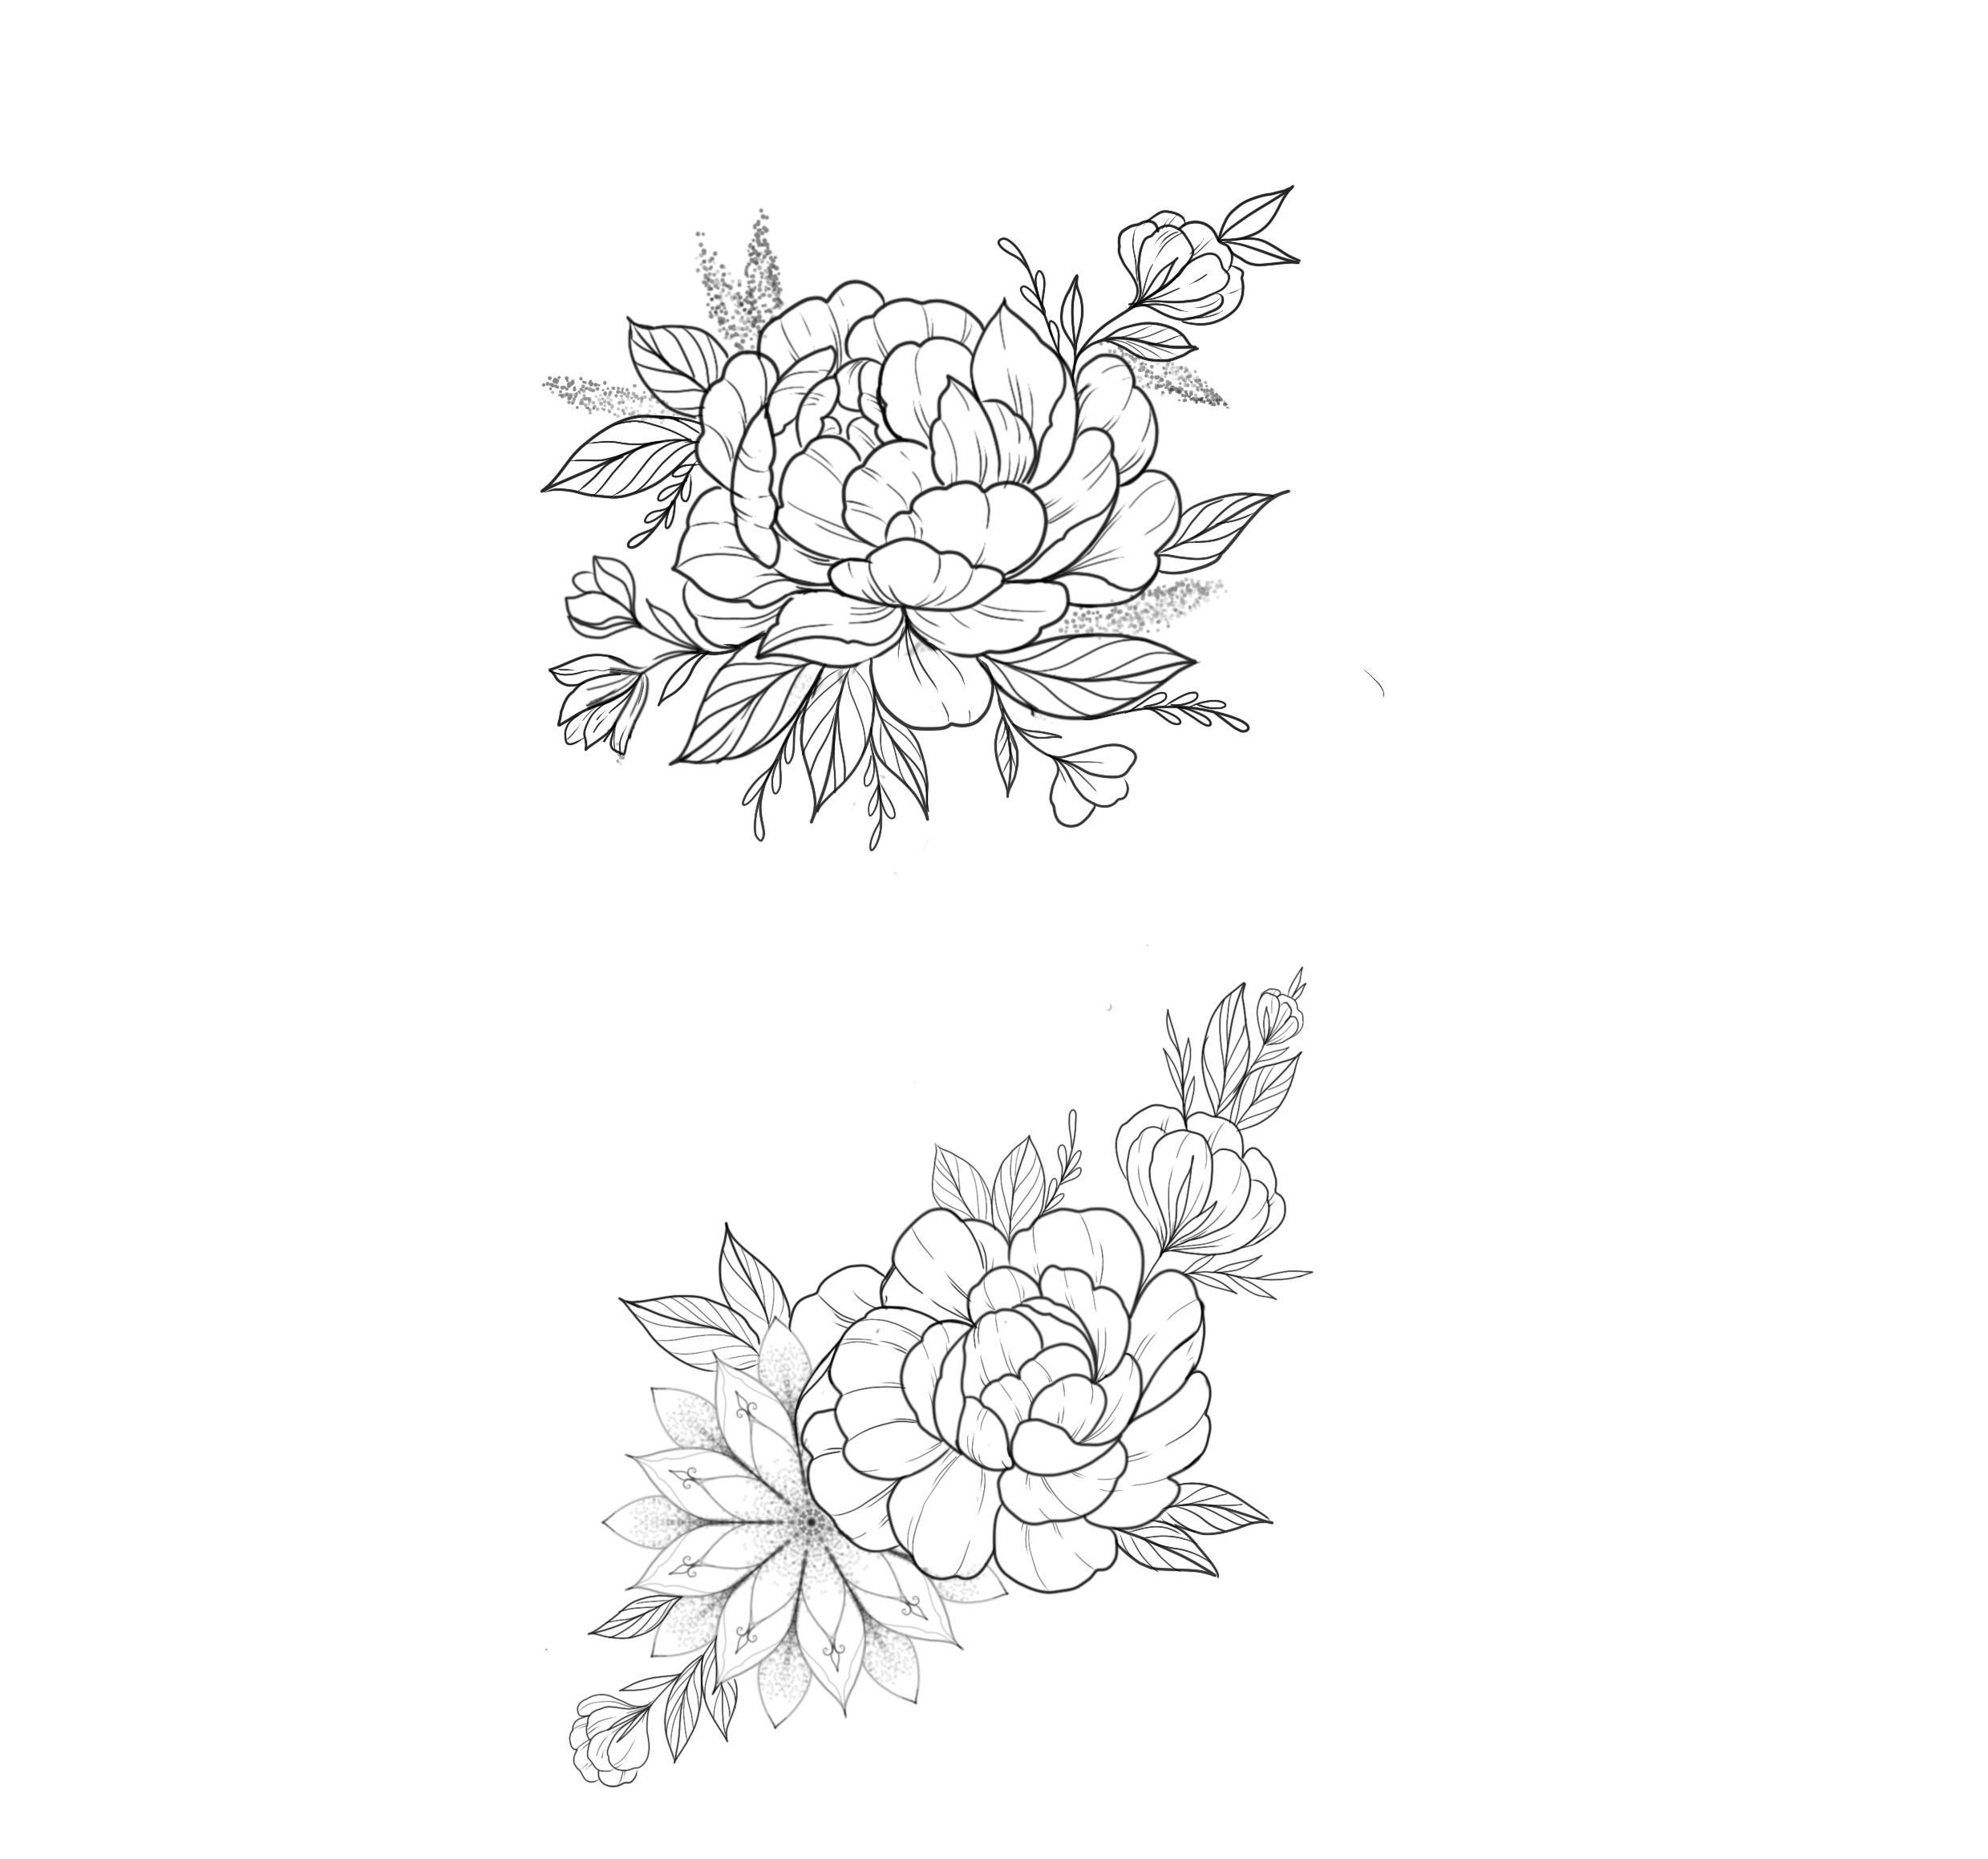 Pin by Ariana Petrova on tattoo ideas (With images